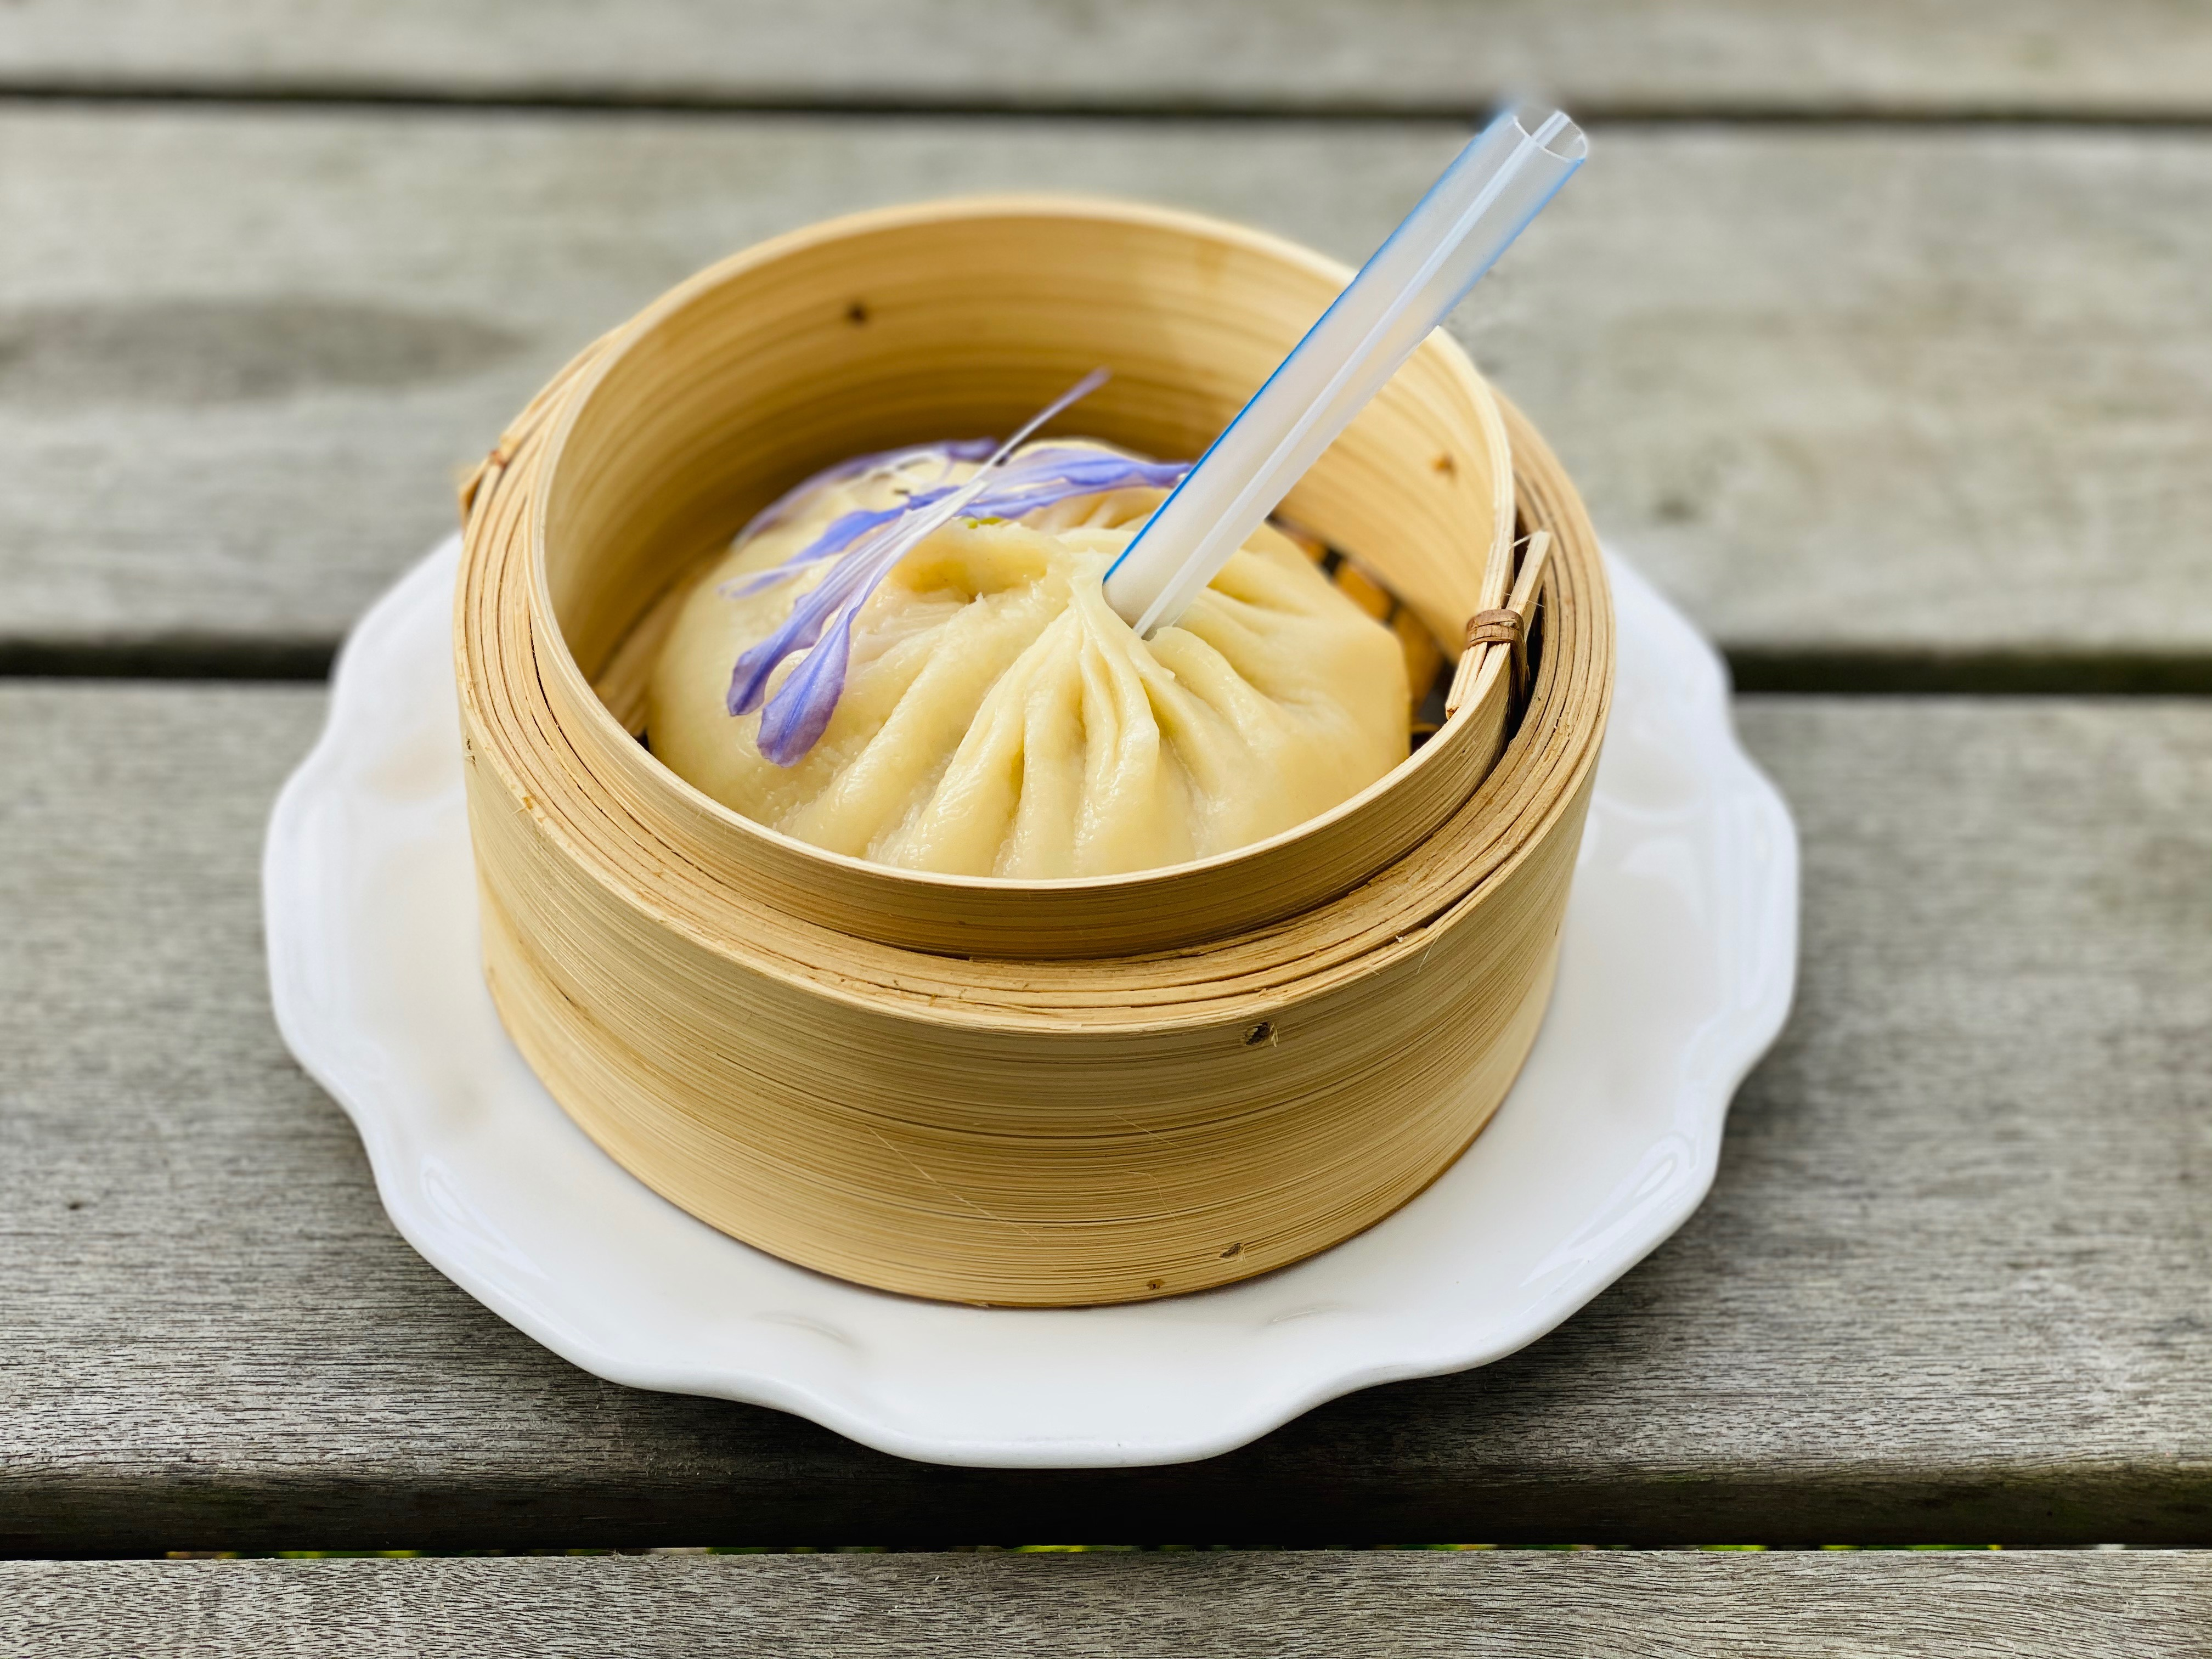 A jumbo-size soup dumpling, served with a straw